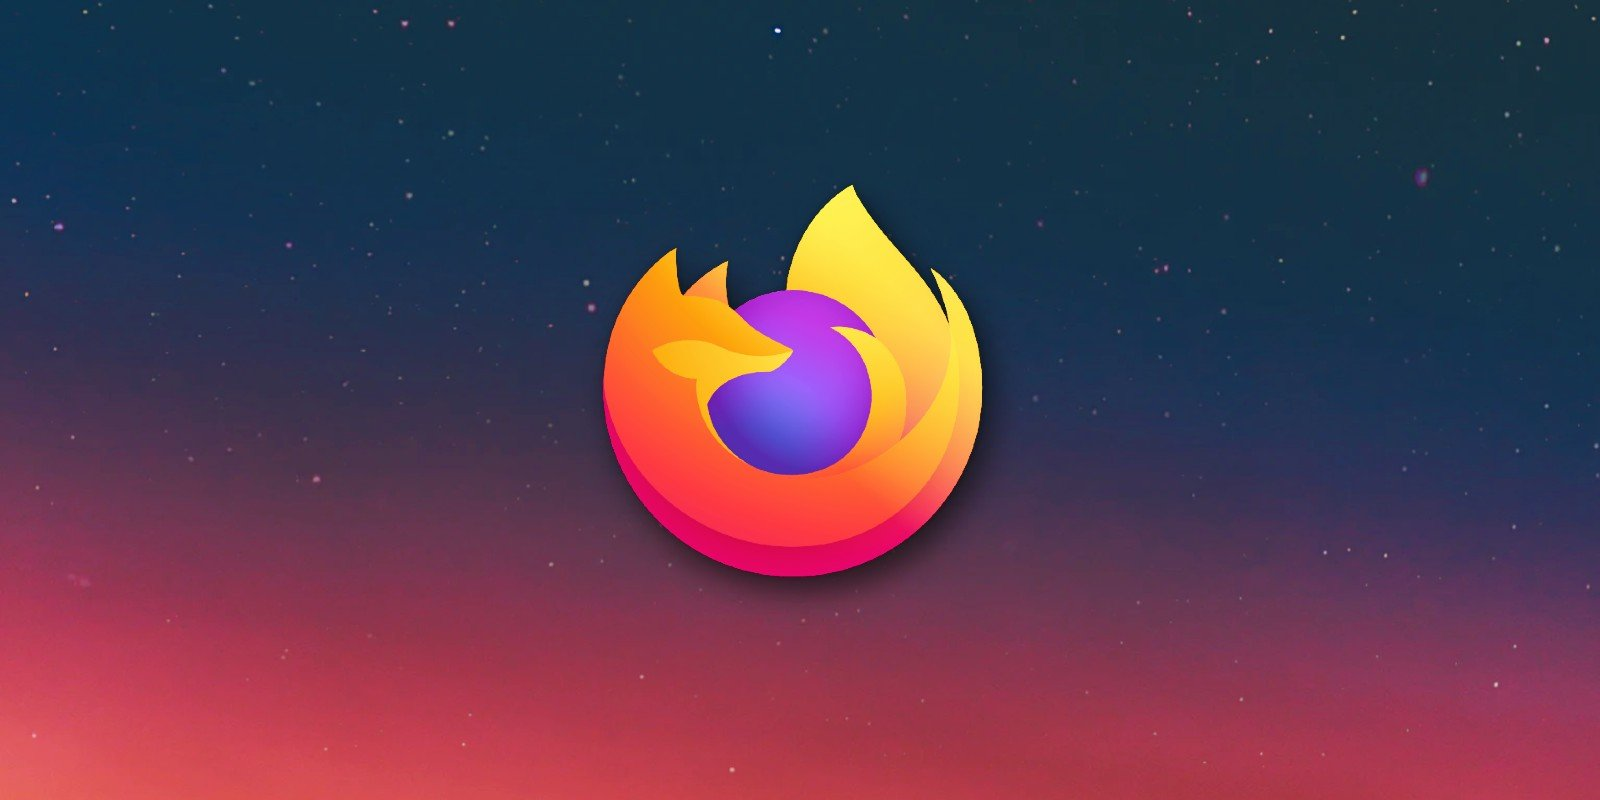 Firefox 86 gets a privacy boost with Total Cookie Protection